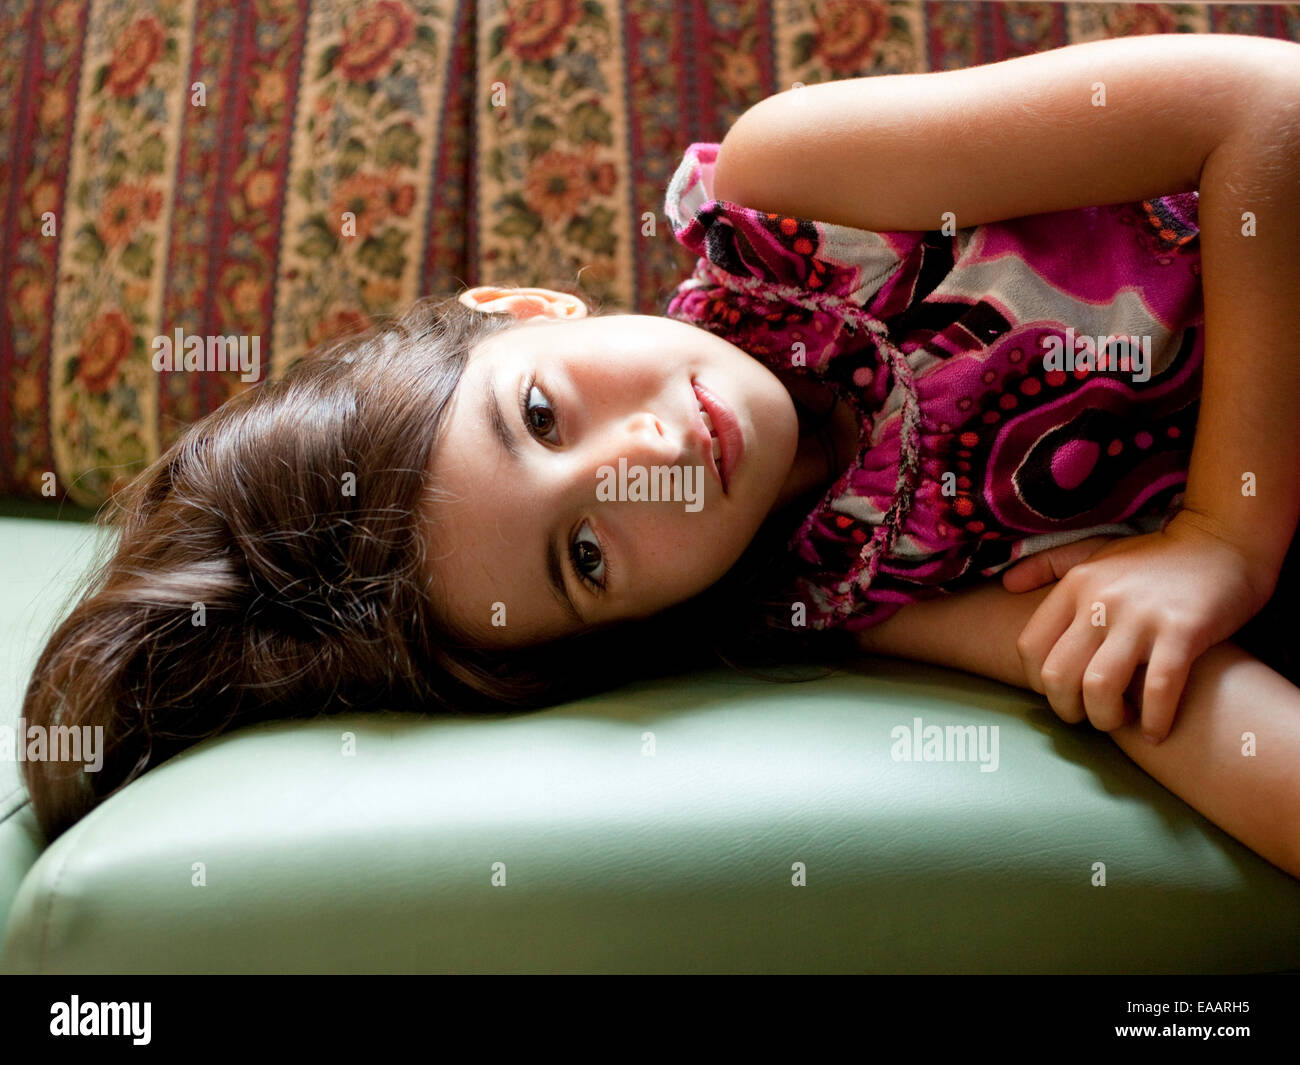 girl reclining on couch - Stock Image